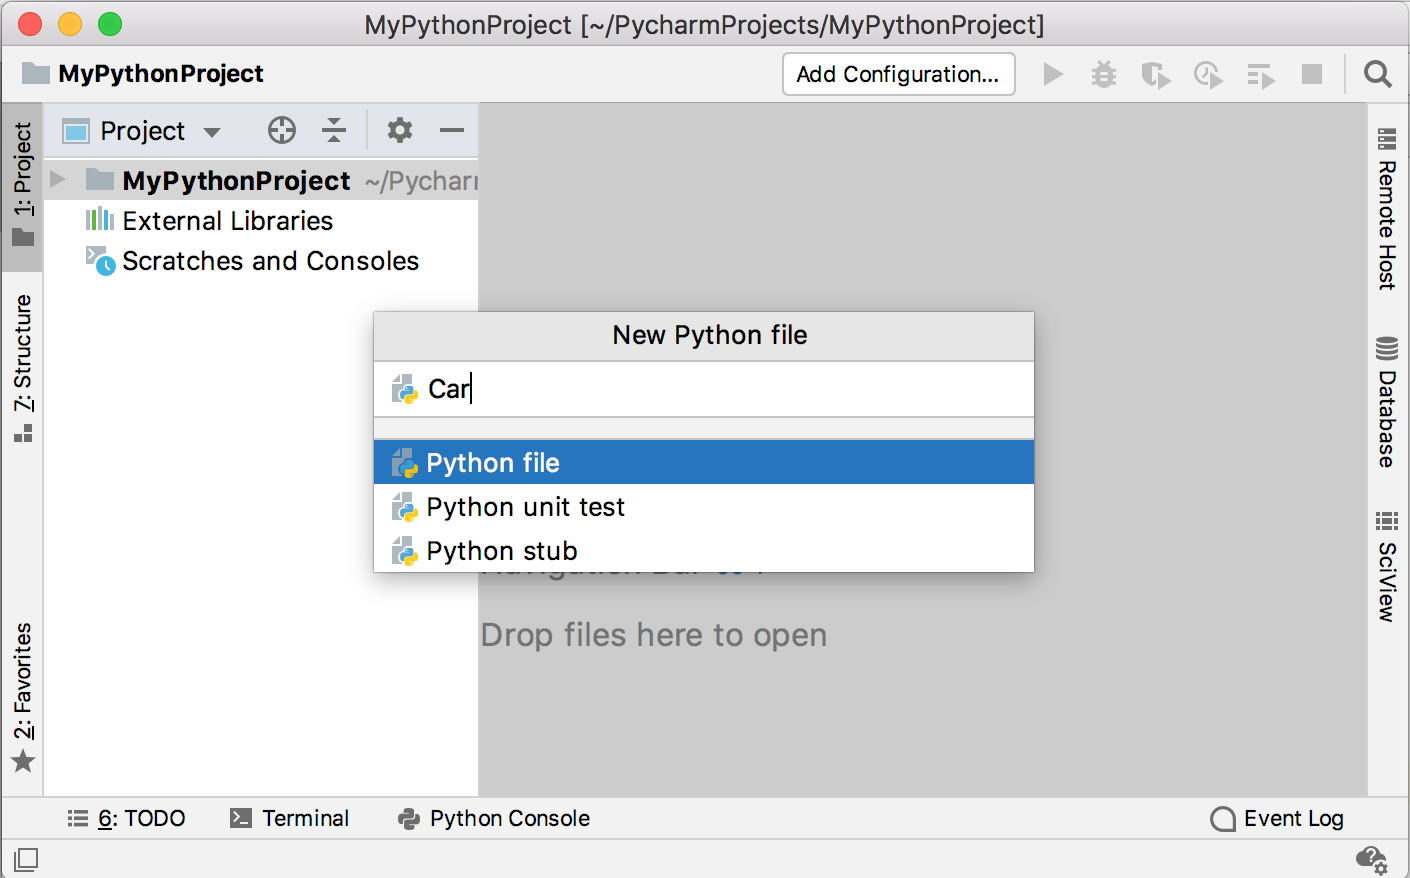 Creating a new Python file